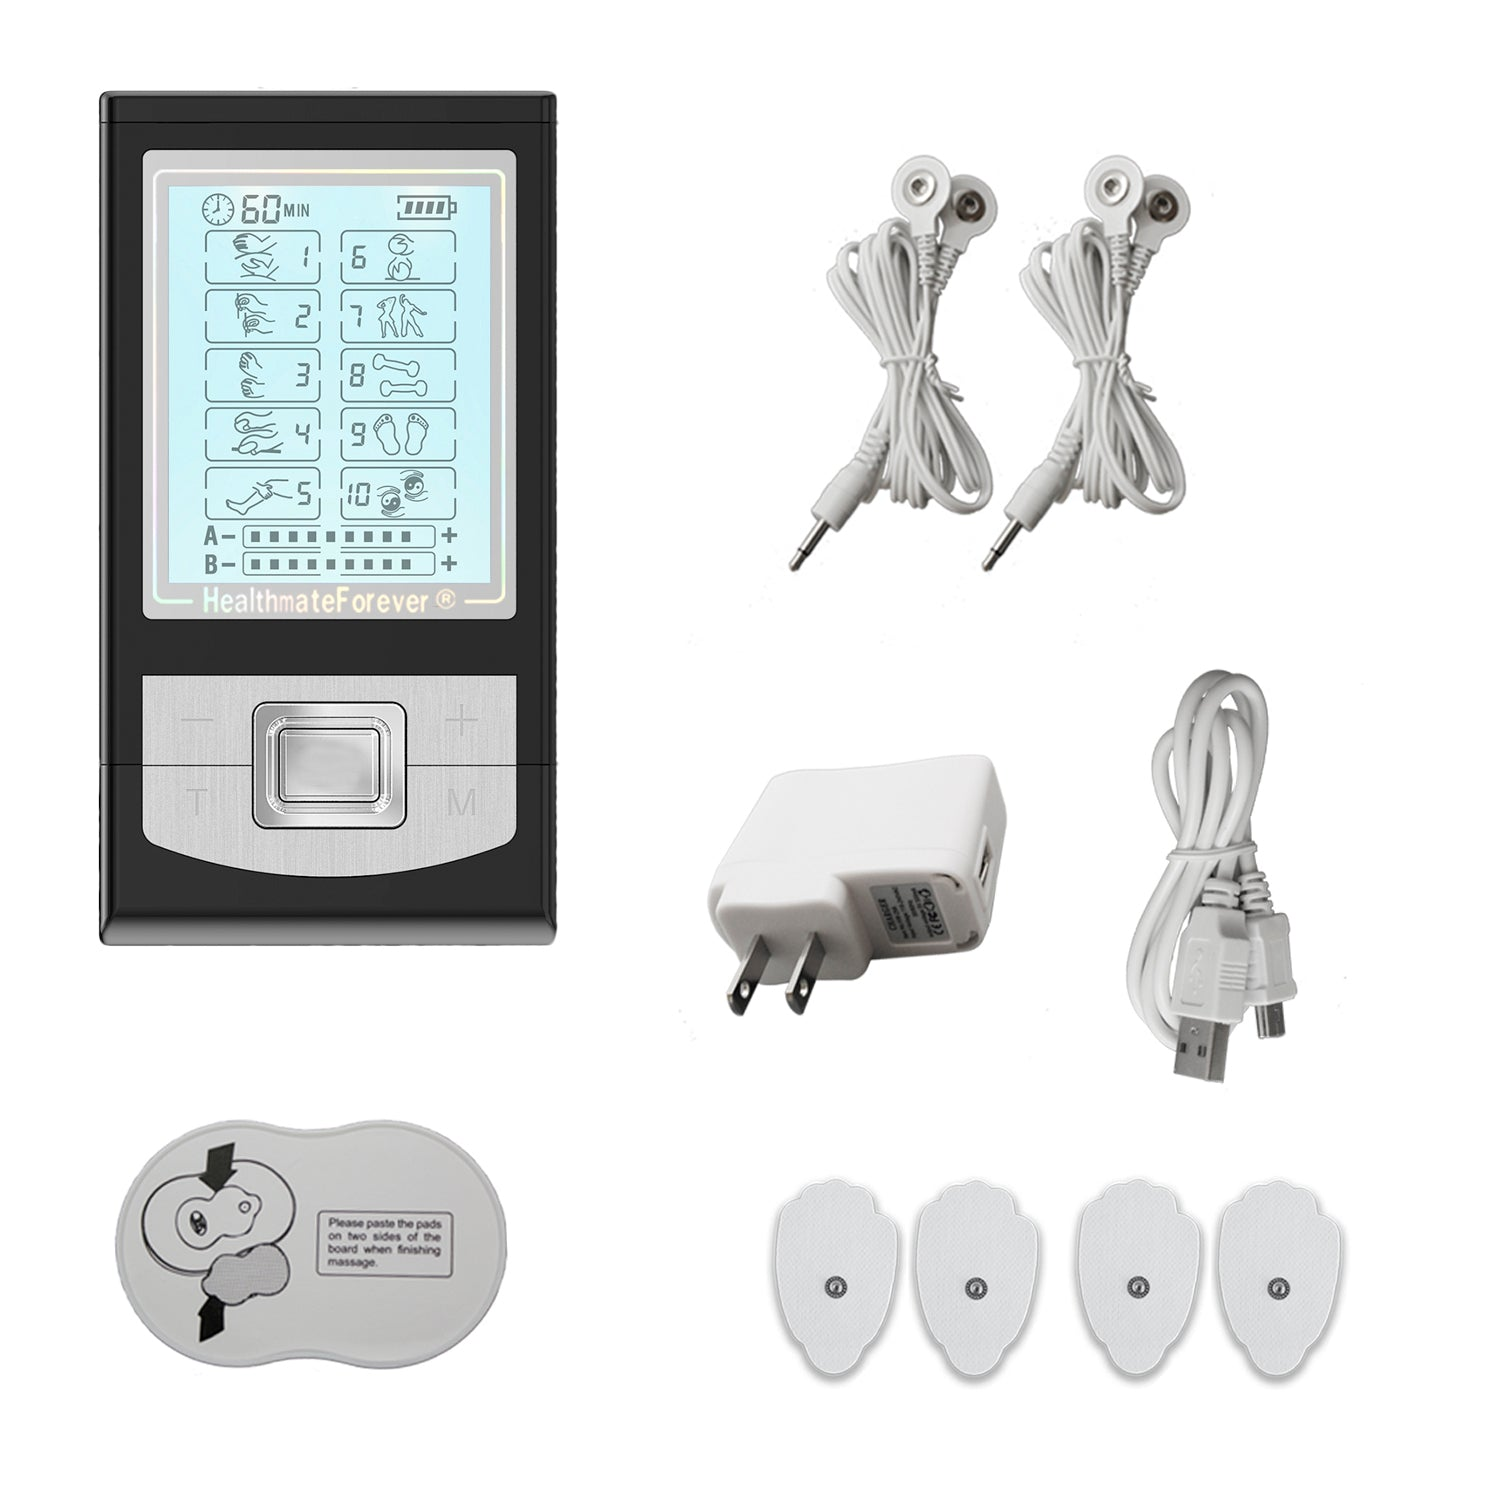 NK10AB TENS Unit & Muscle Stimulator - HealthmateForever